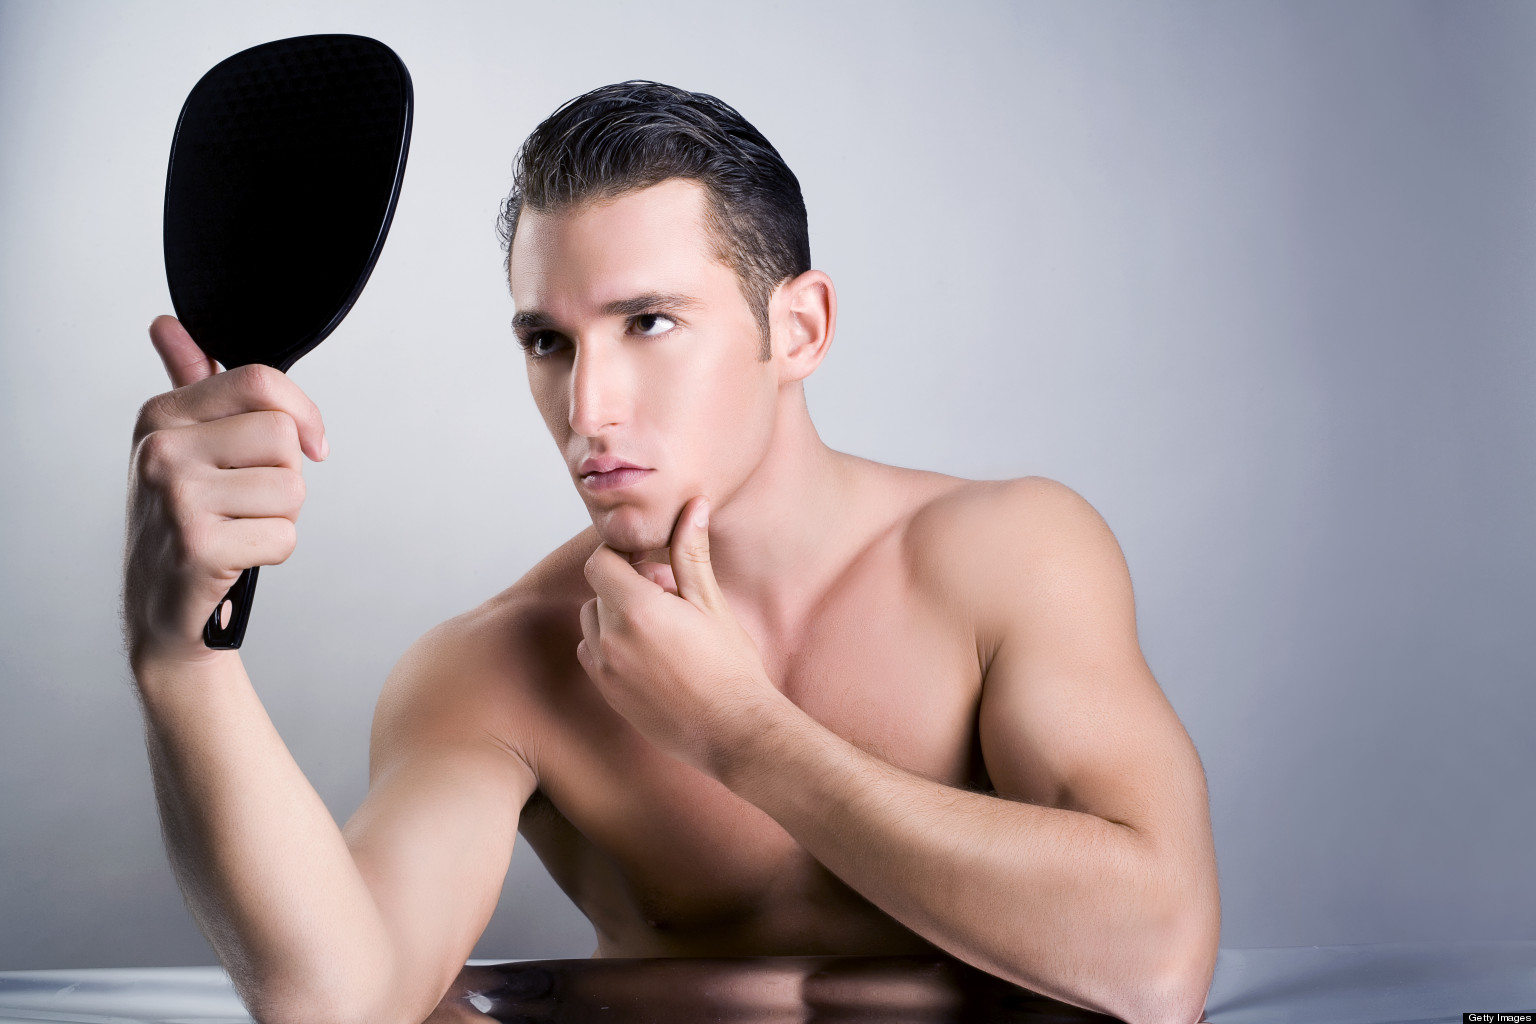 sinclairville gay personals Join the discussion this forum covers sinclairville, ny local community news, events for your calendar, and updates from colleges, churches, sports, and classifieds.